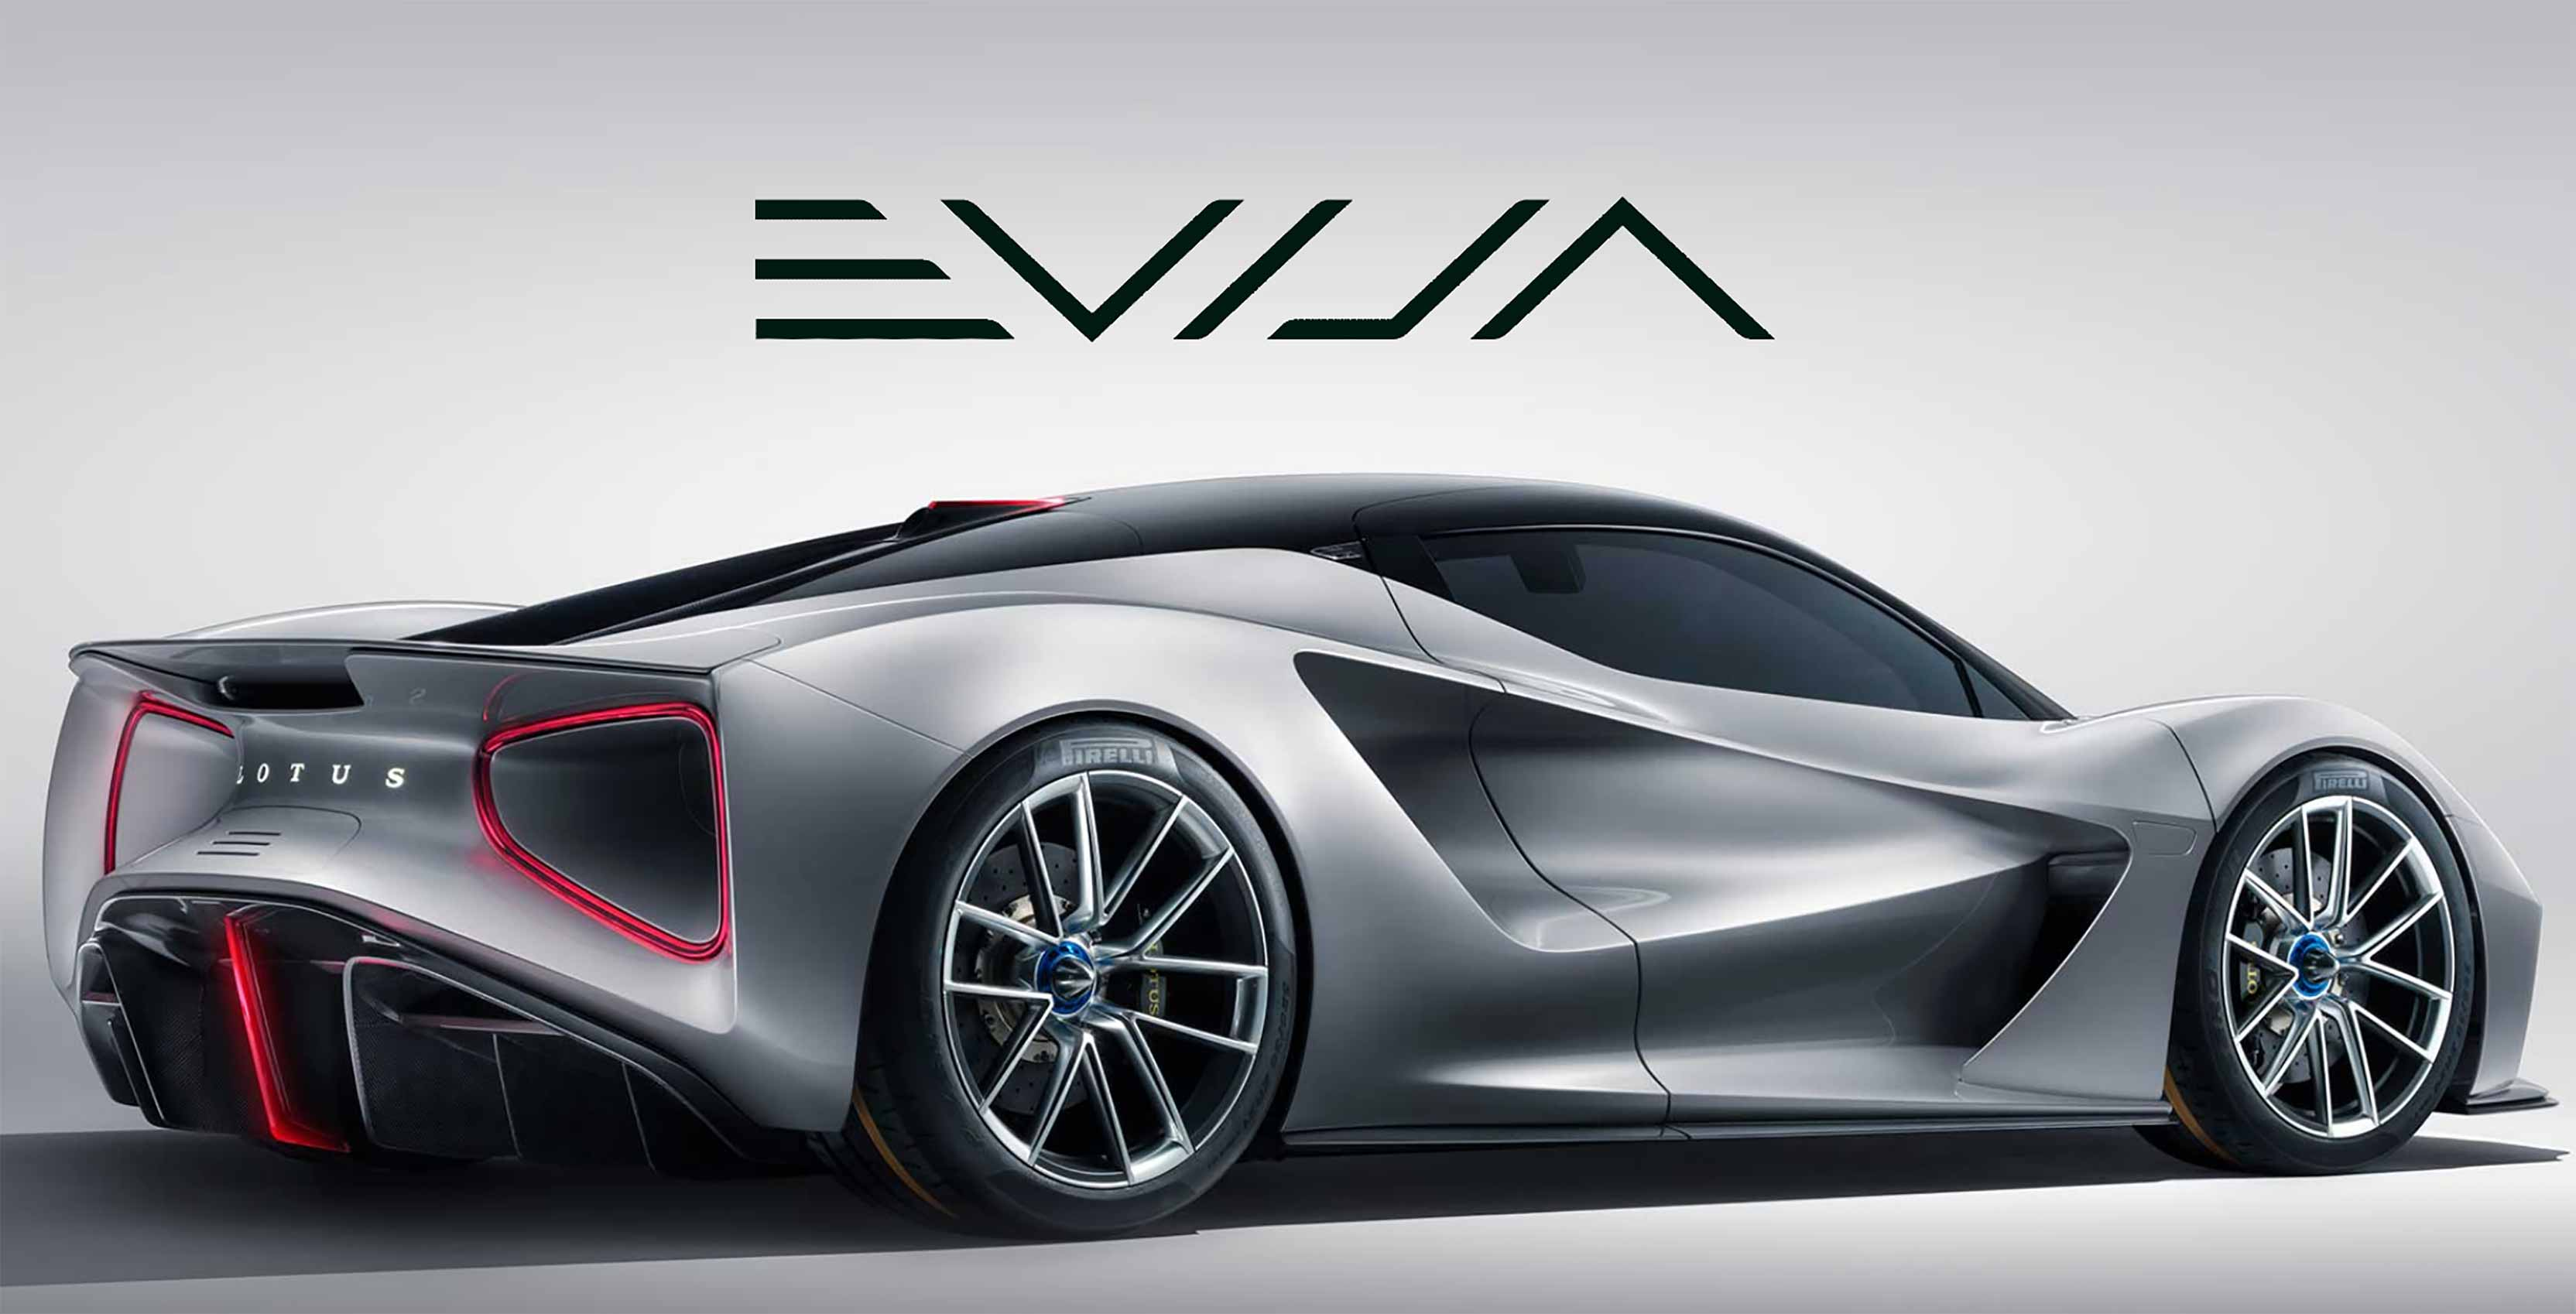 Lotus goes upmarket, unveals a new electric hypercar